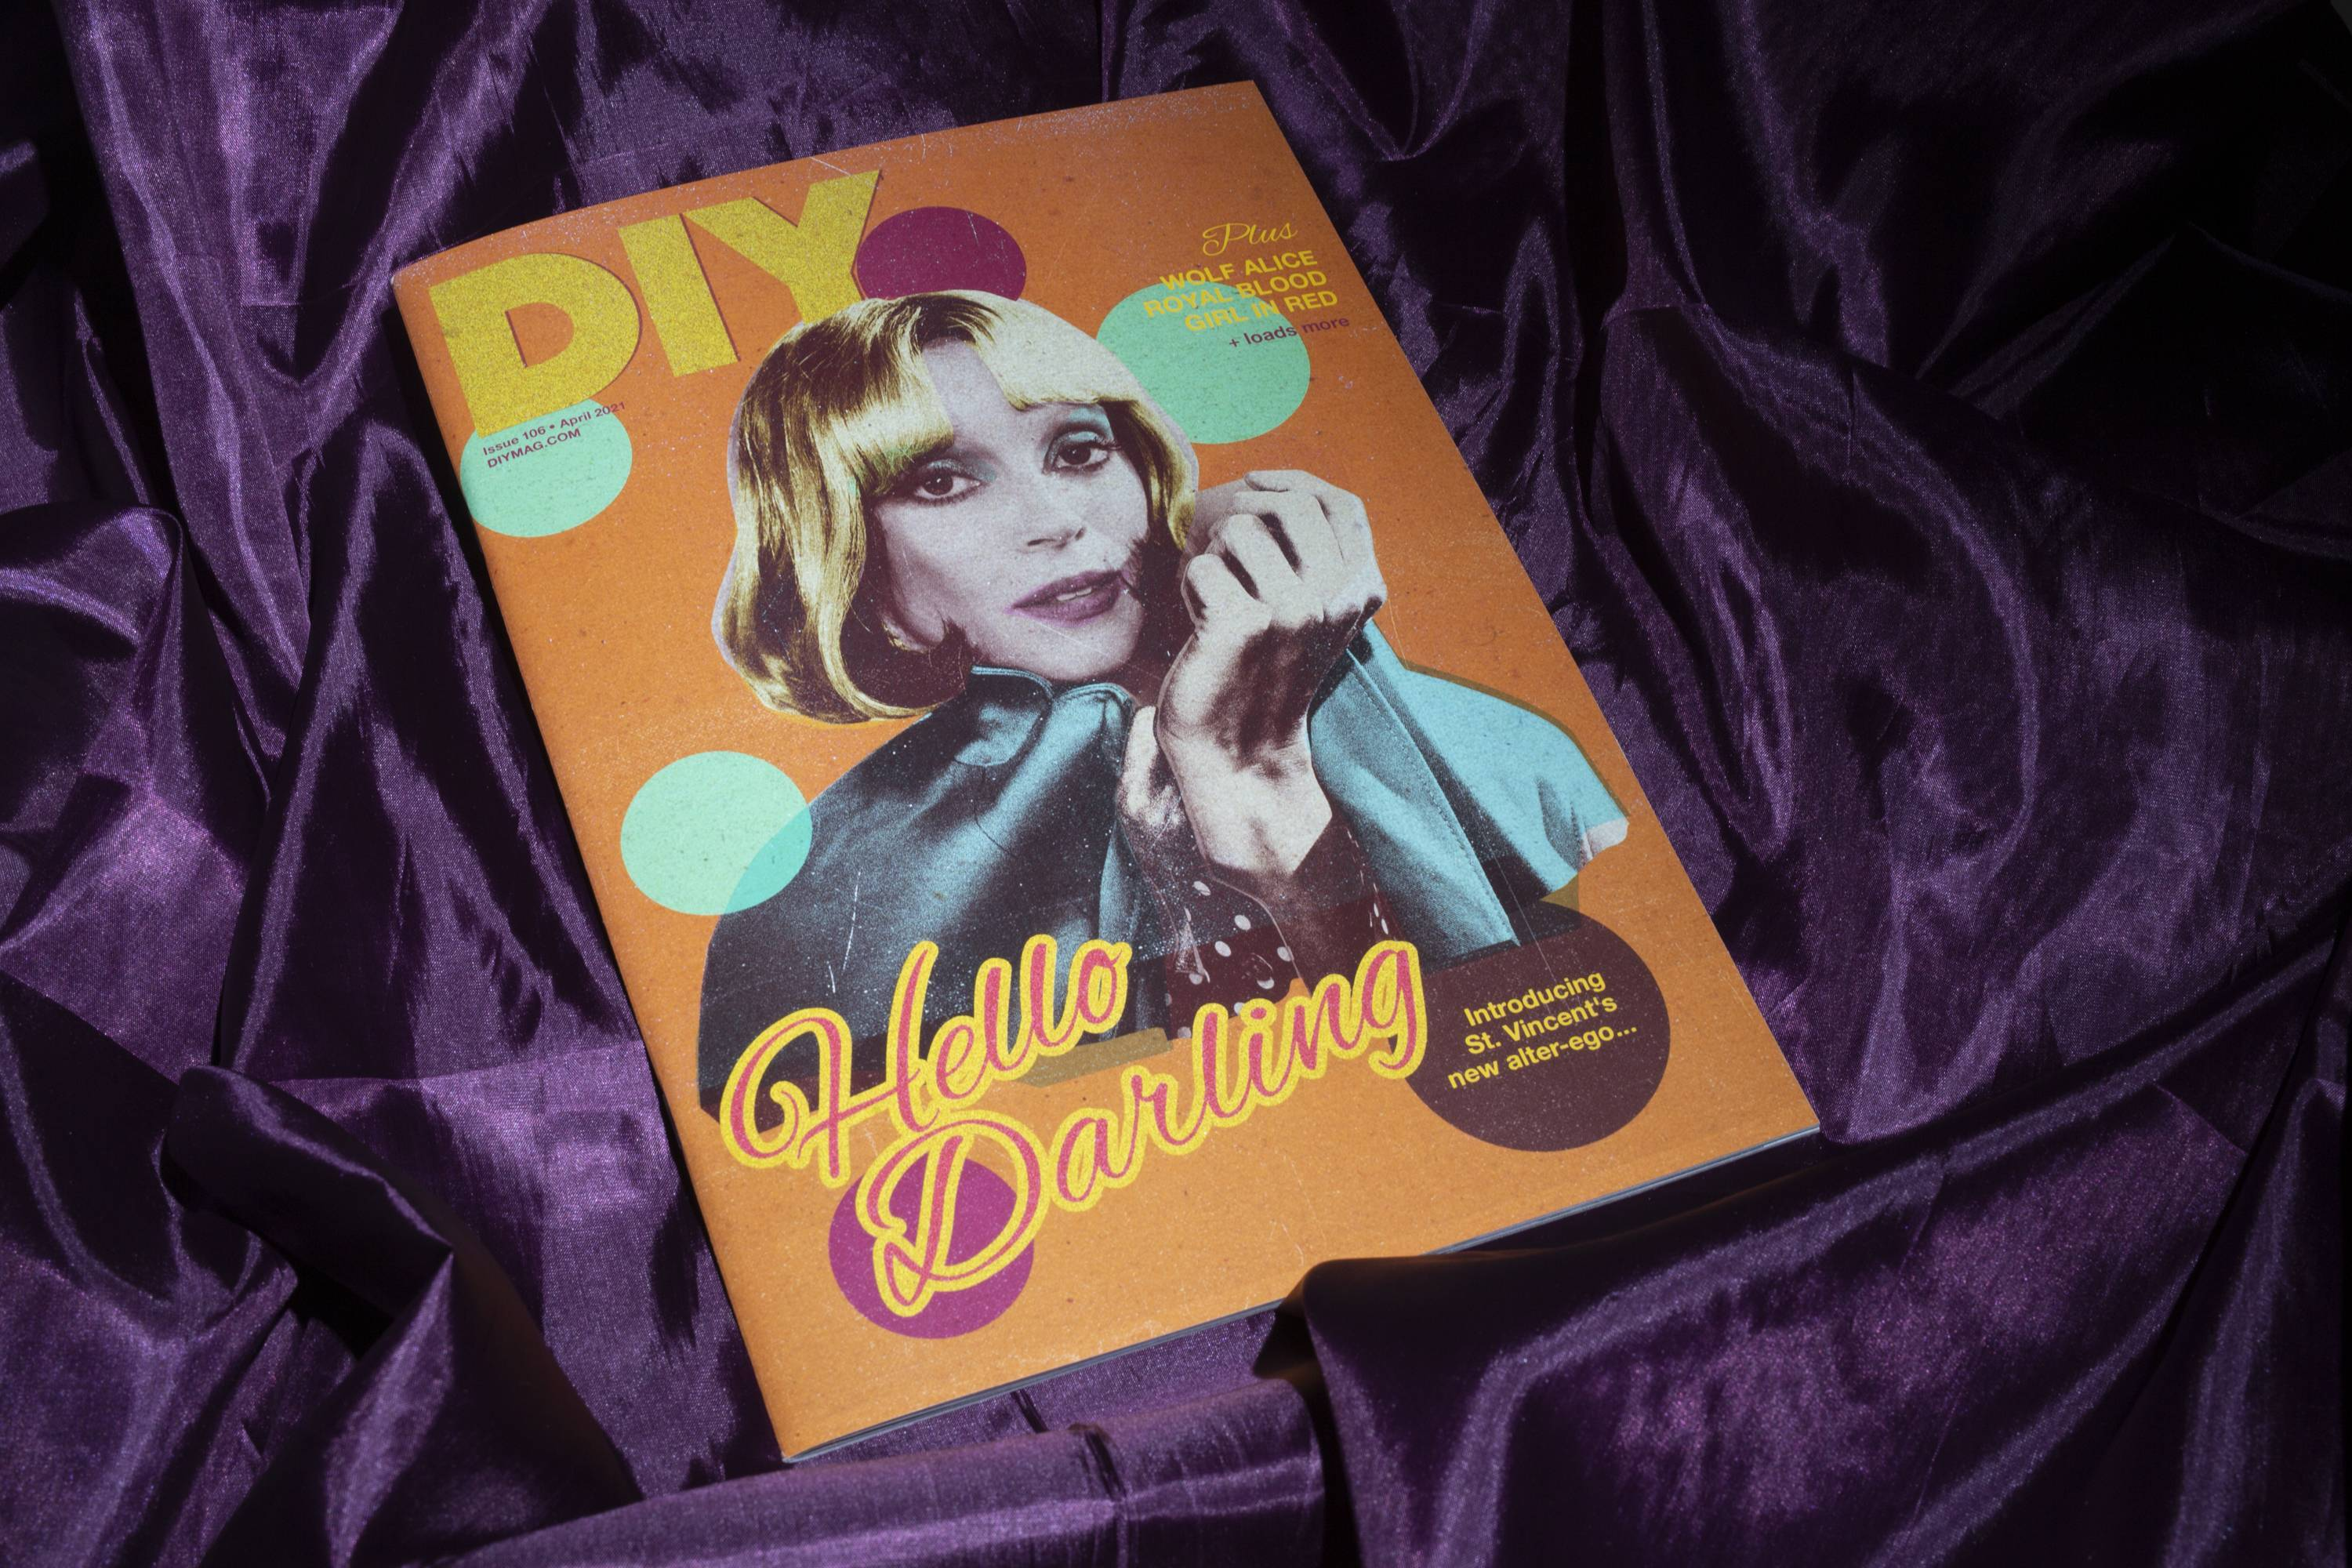 DIY's April 2021 issue - feat. St. Vincent, Royal Blood, Wolf Alice & more - is out now!